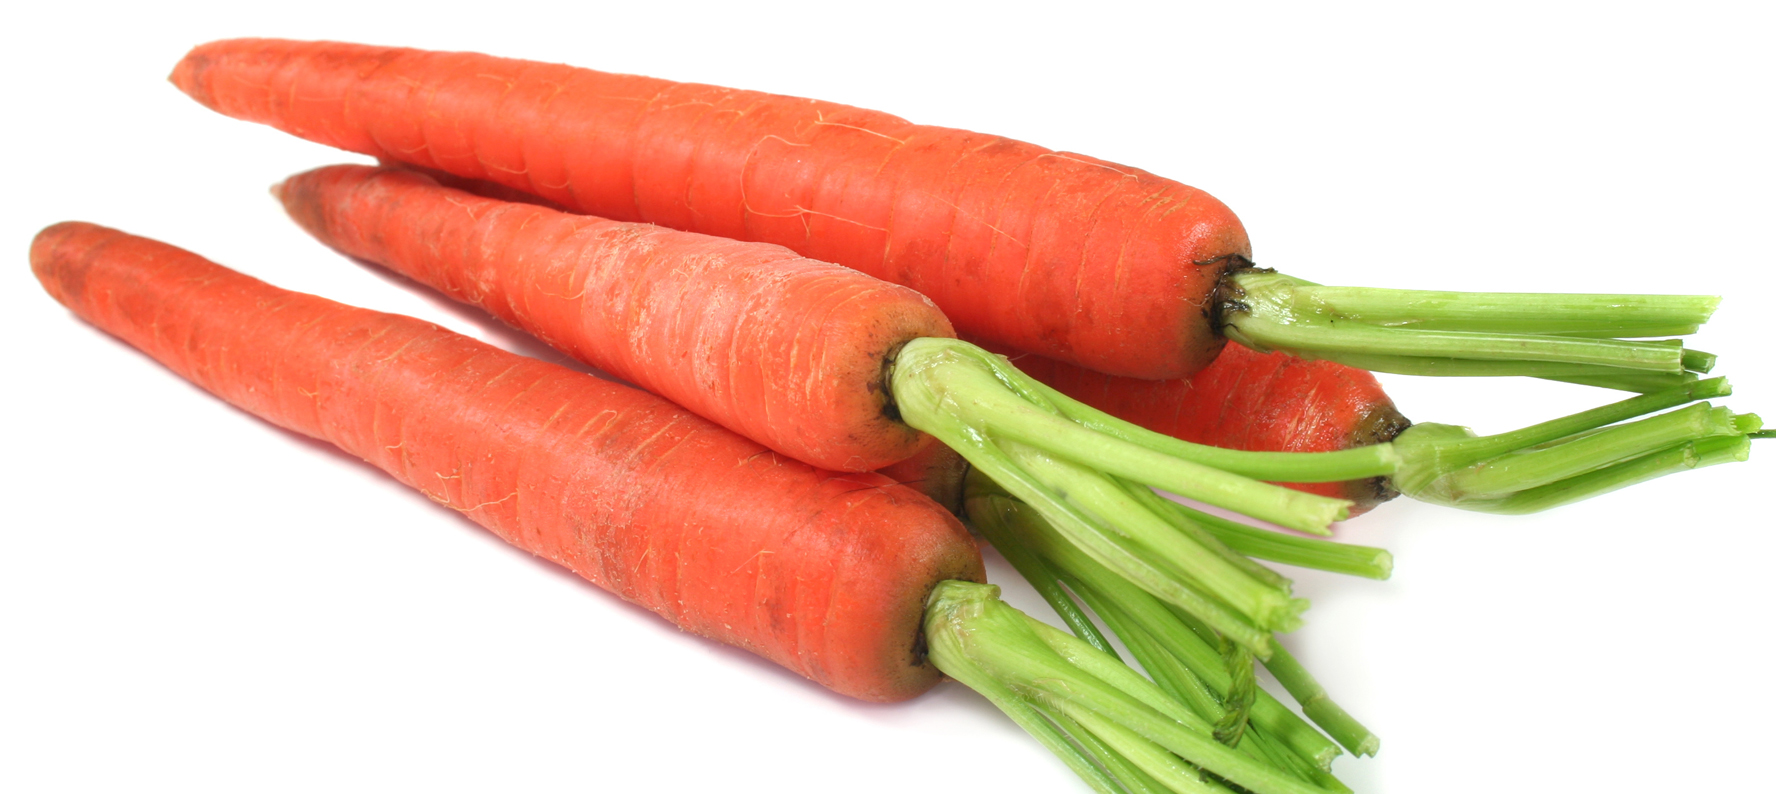 Beta Carotene is used in natural skin care products for its antioxidant properties.